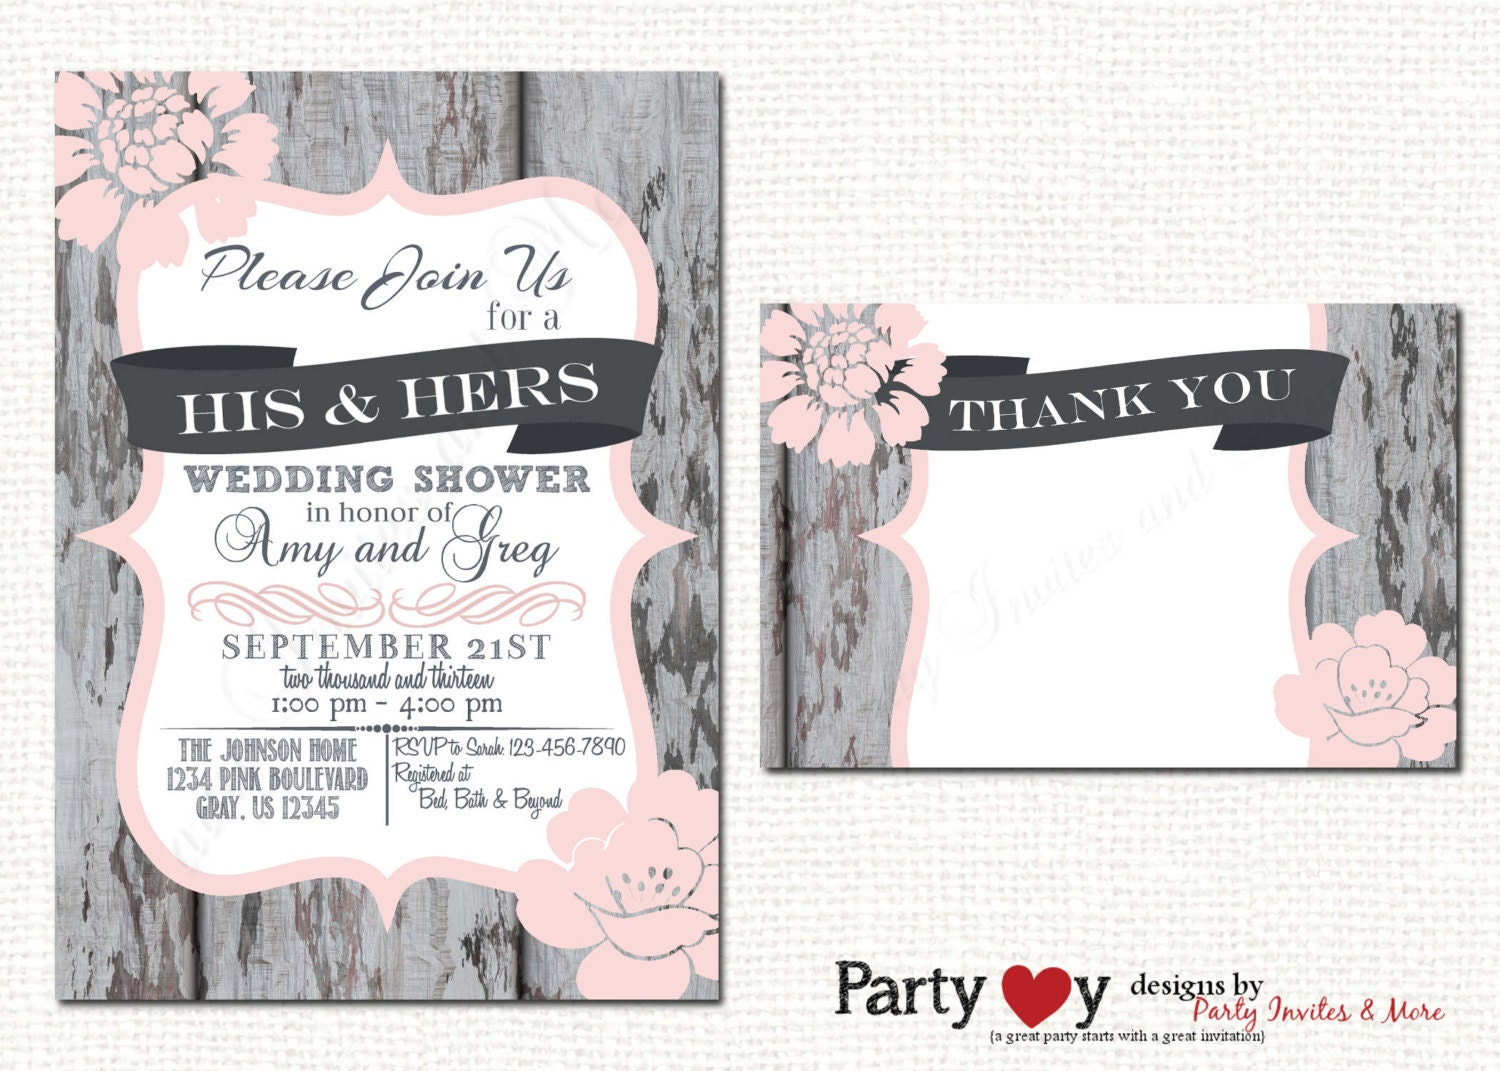 Postcard Wedding Shower Invitations: Couple's Wedding Shower Invitation Couples Shower